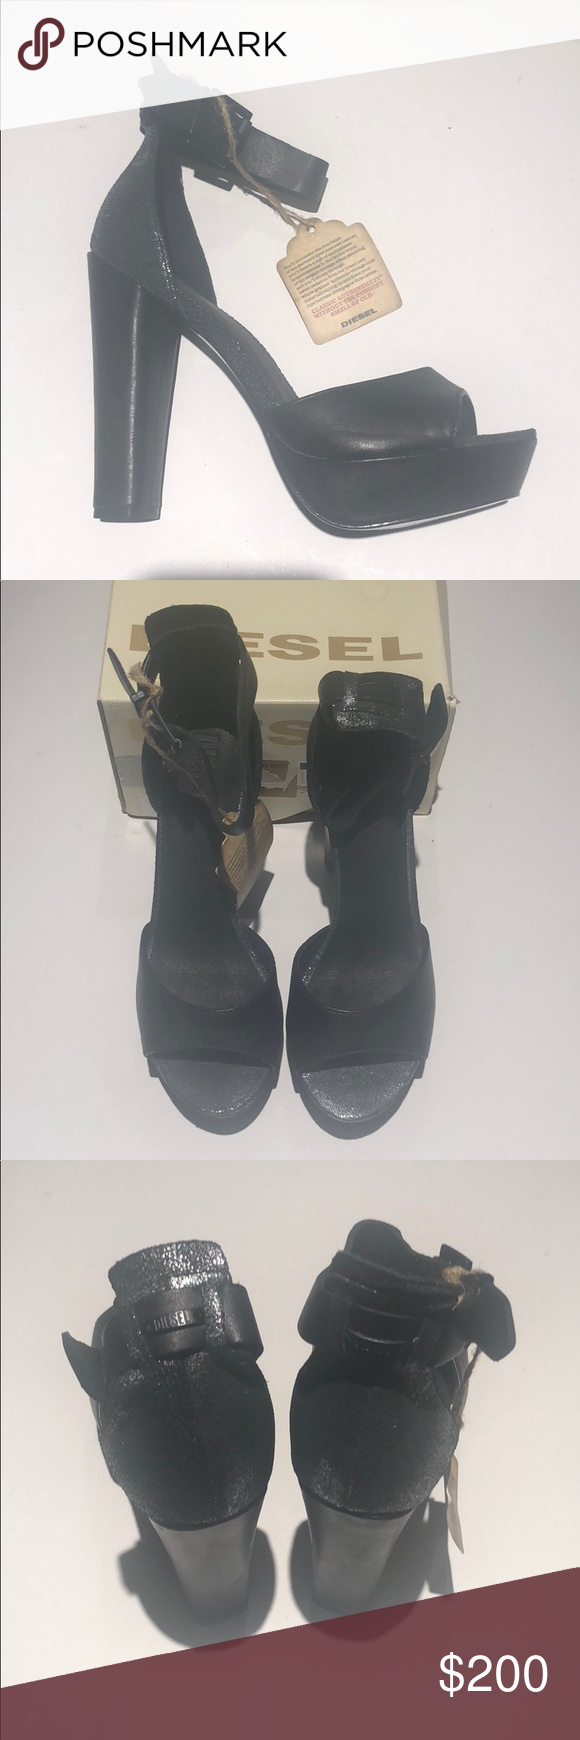 b3bd11f508 Diesel women's heels pumps Black size 37 NIB Up for sale Diesel woman's heels  size 37